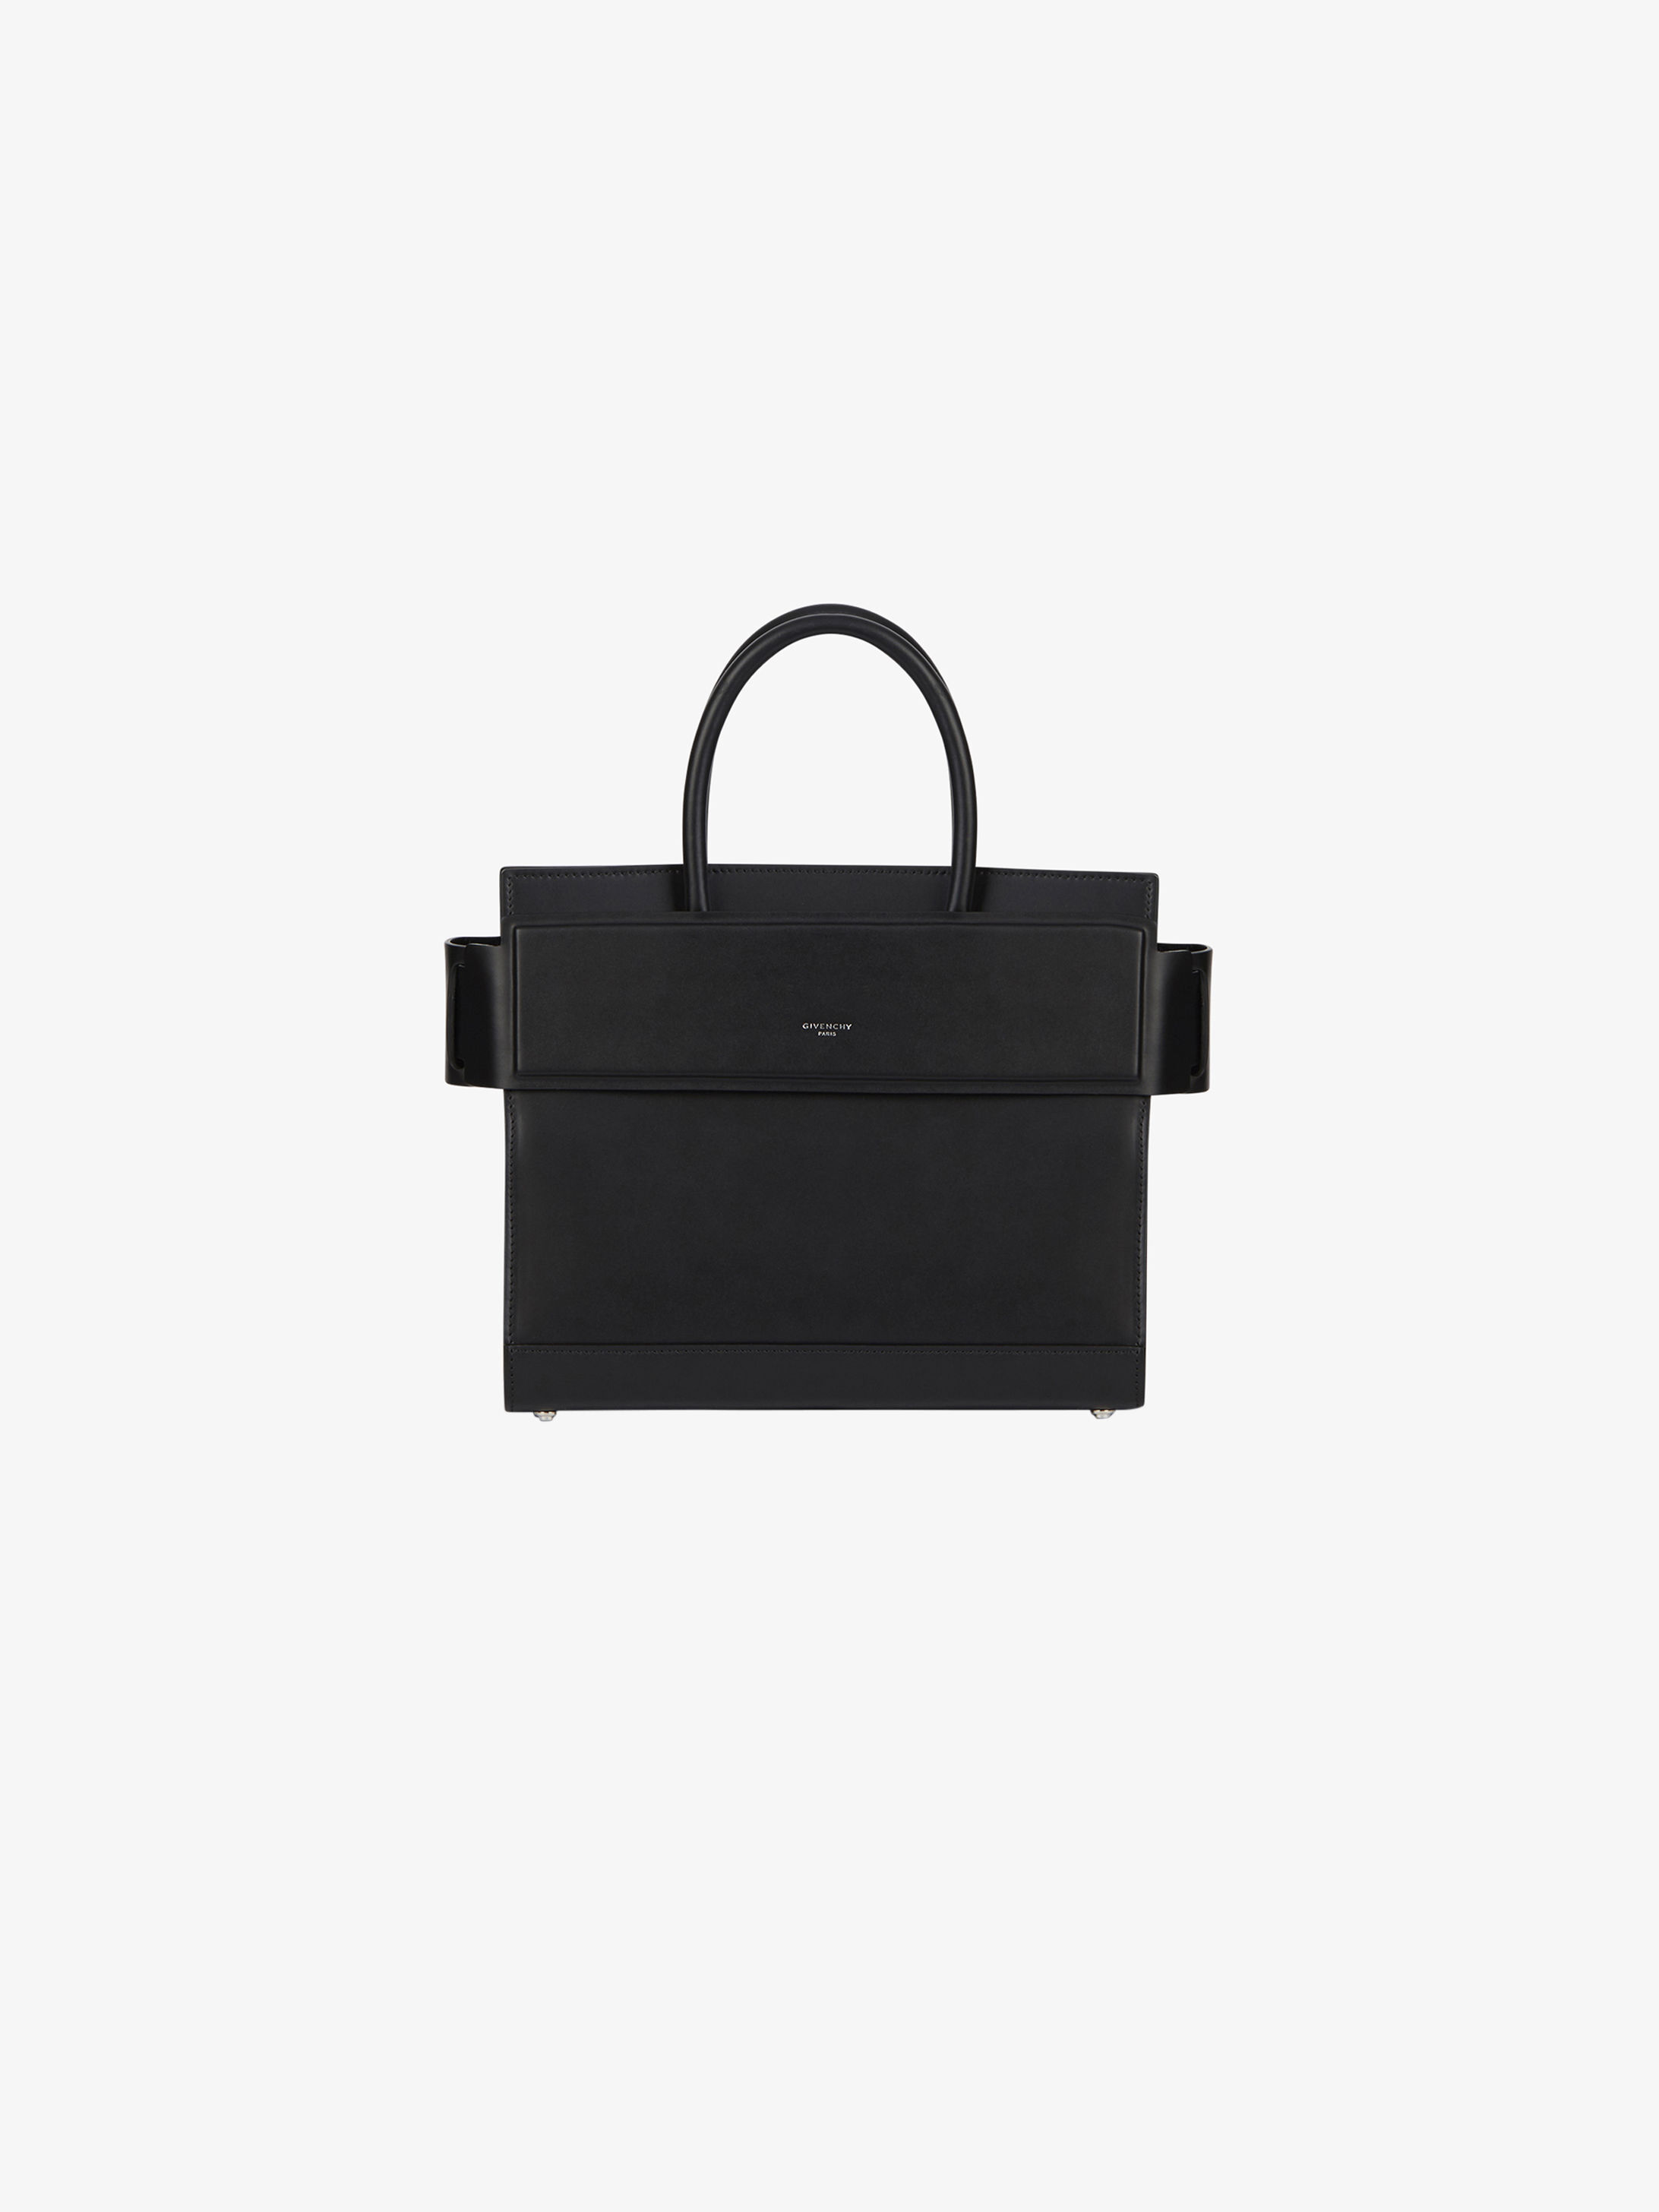 Women s Handbags collection by Givenchy.   GIVENCHY Paris 119a5b8bc8